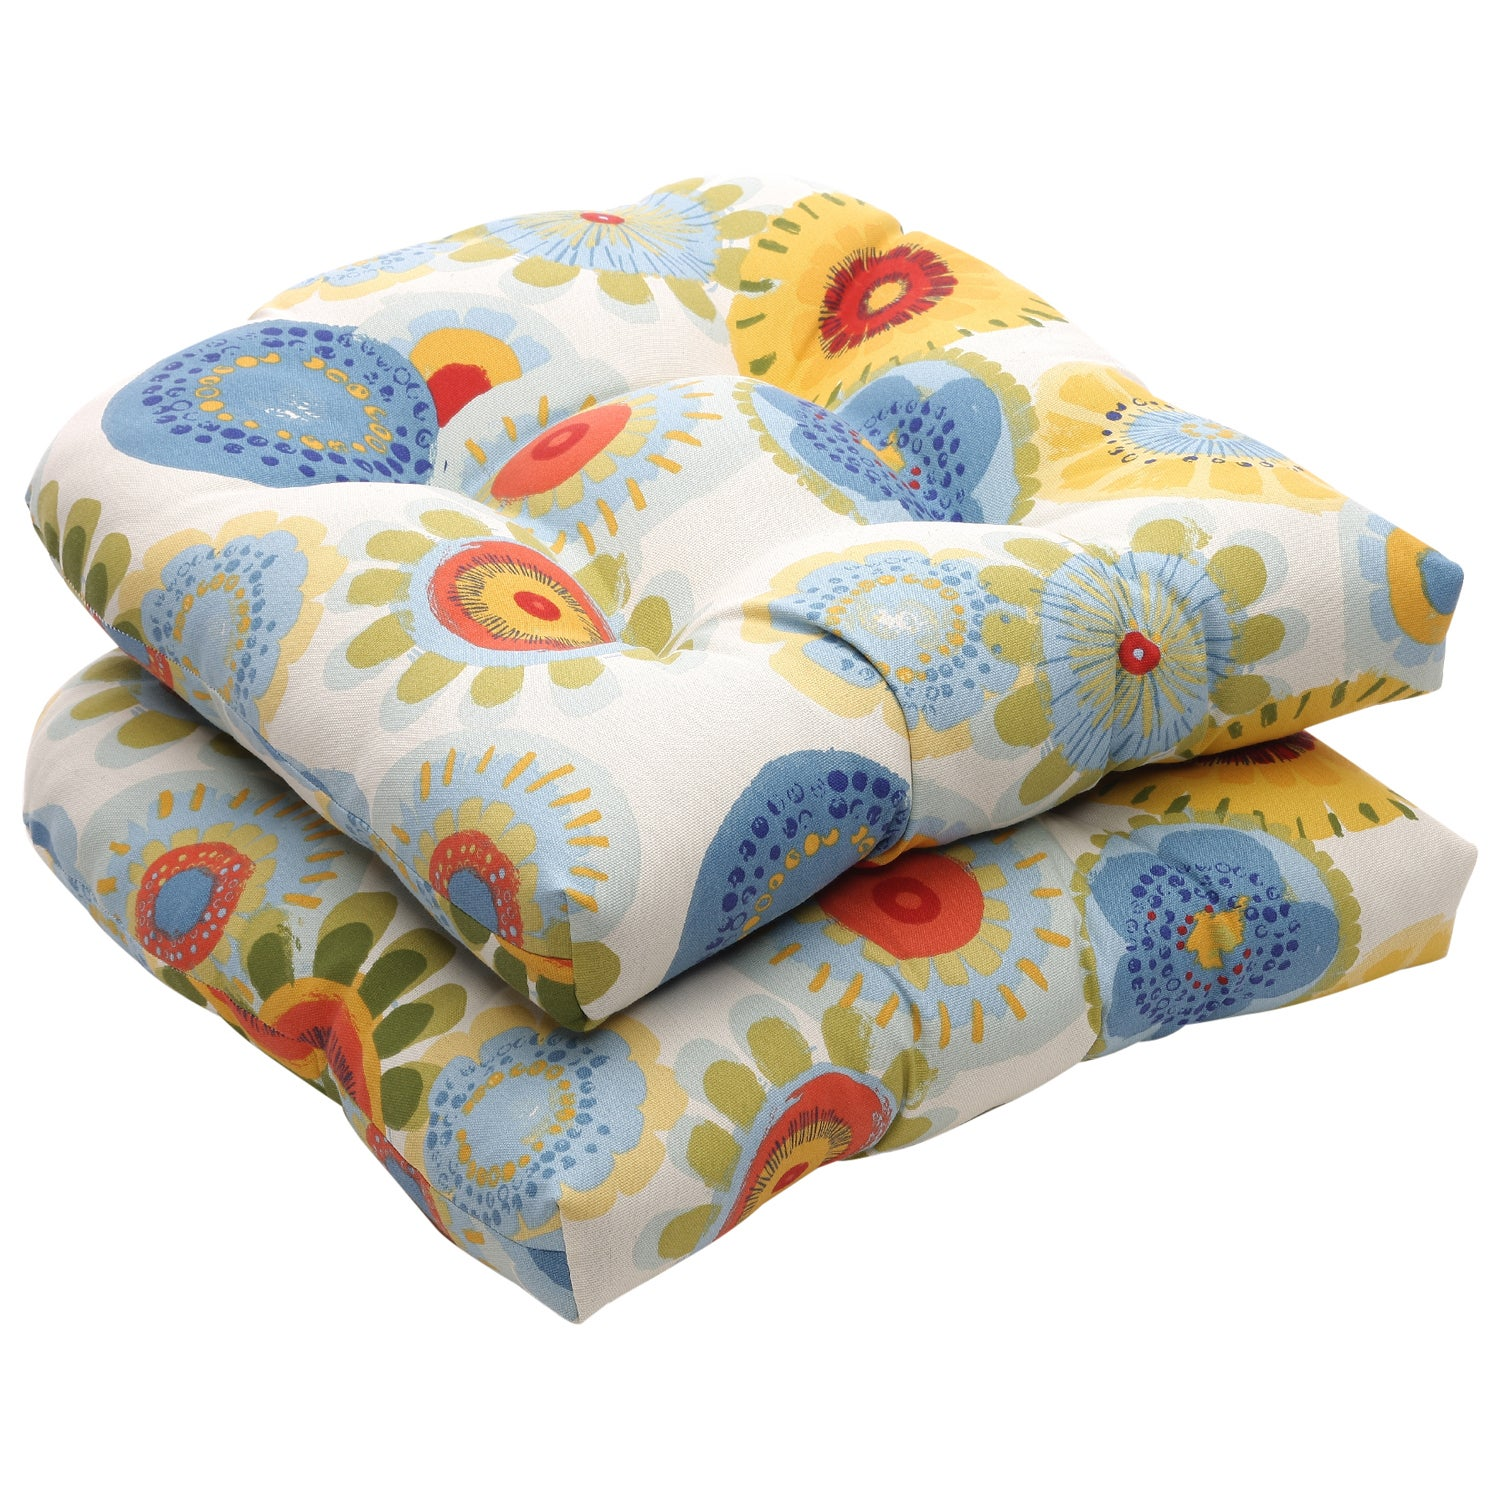 Outdoor Multicolored Floral Wicker Polyester Seat Cushions